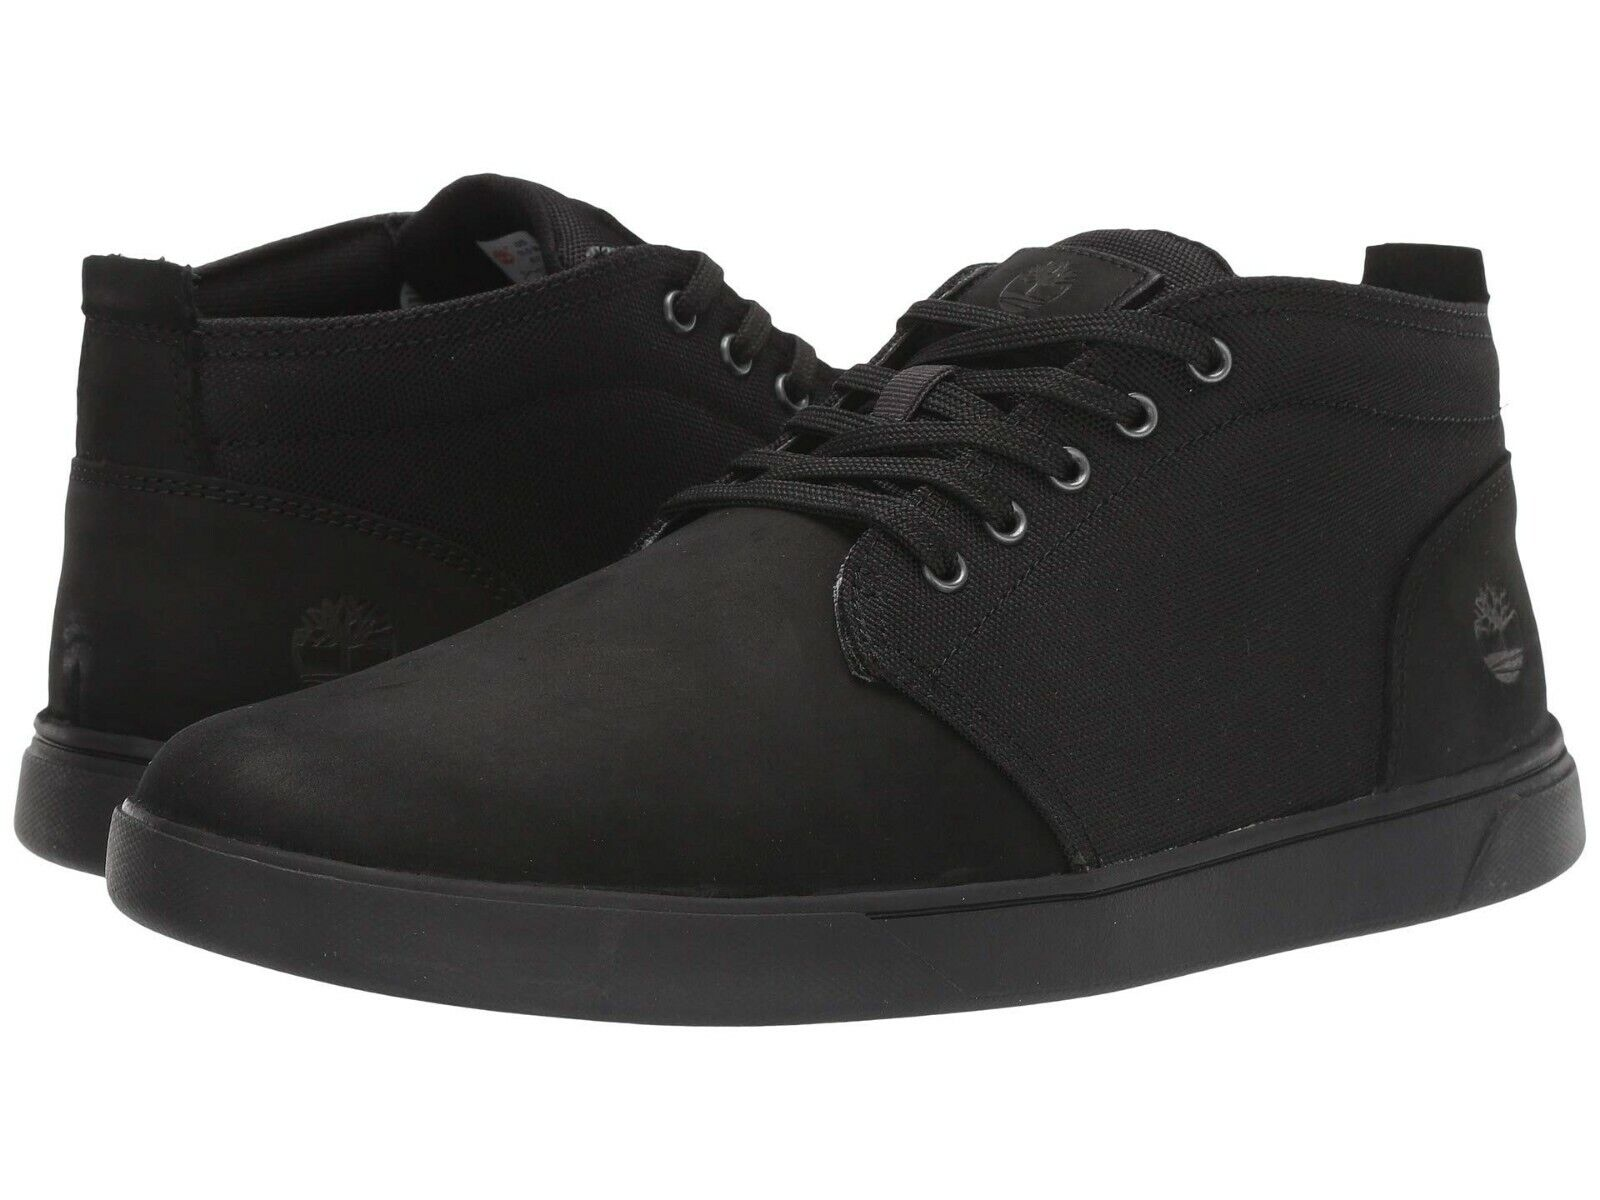 Men's Shoes Timberland Groveton Leather & Fabric Chukka Sneakers 6743A BLACK